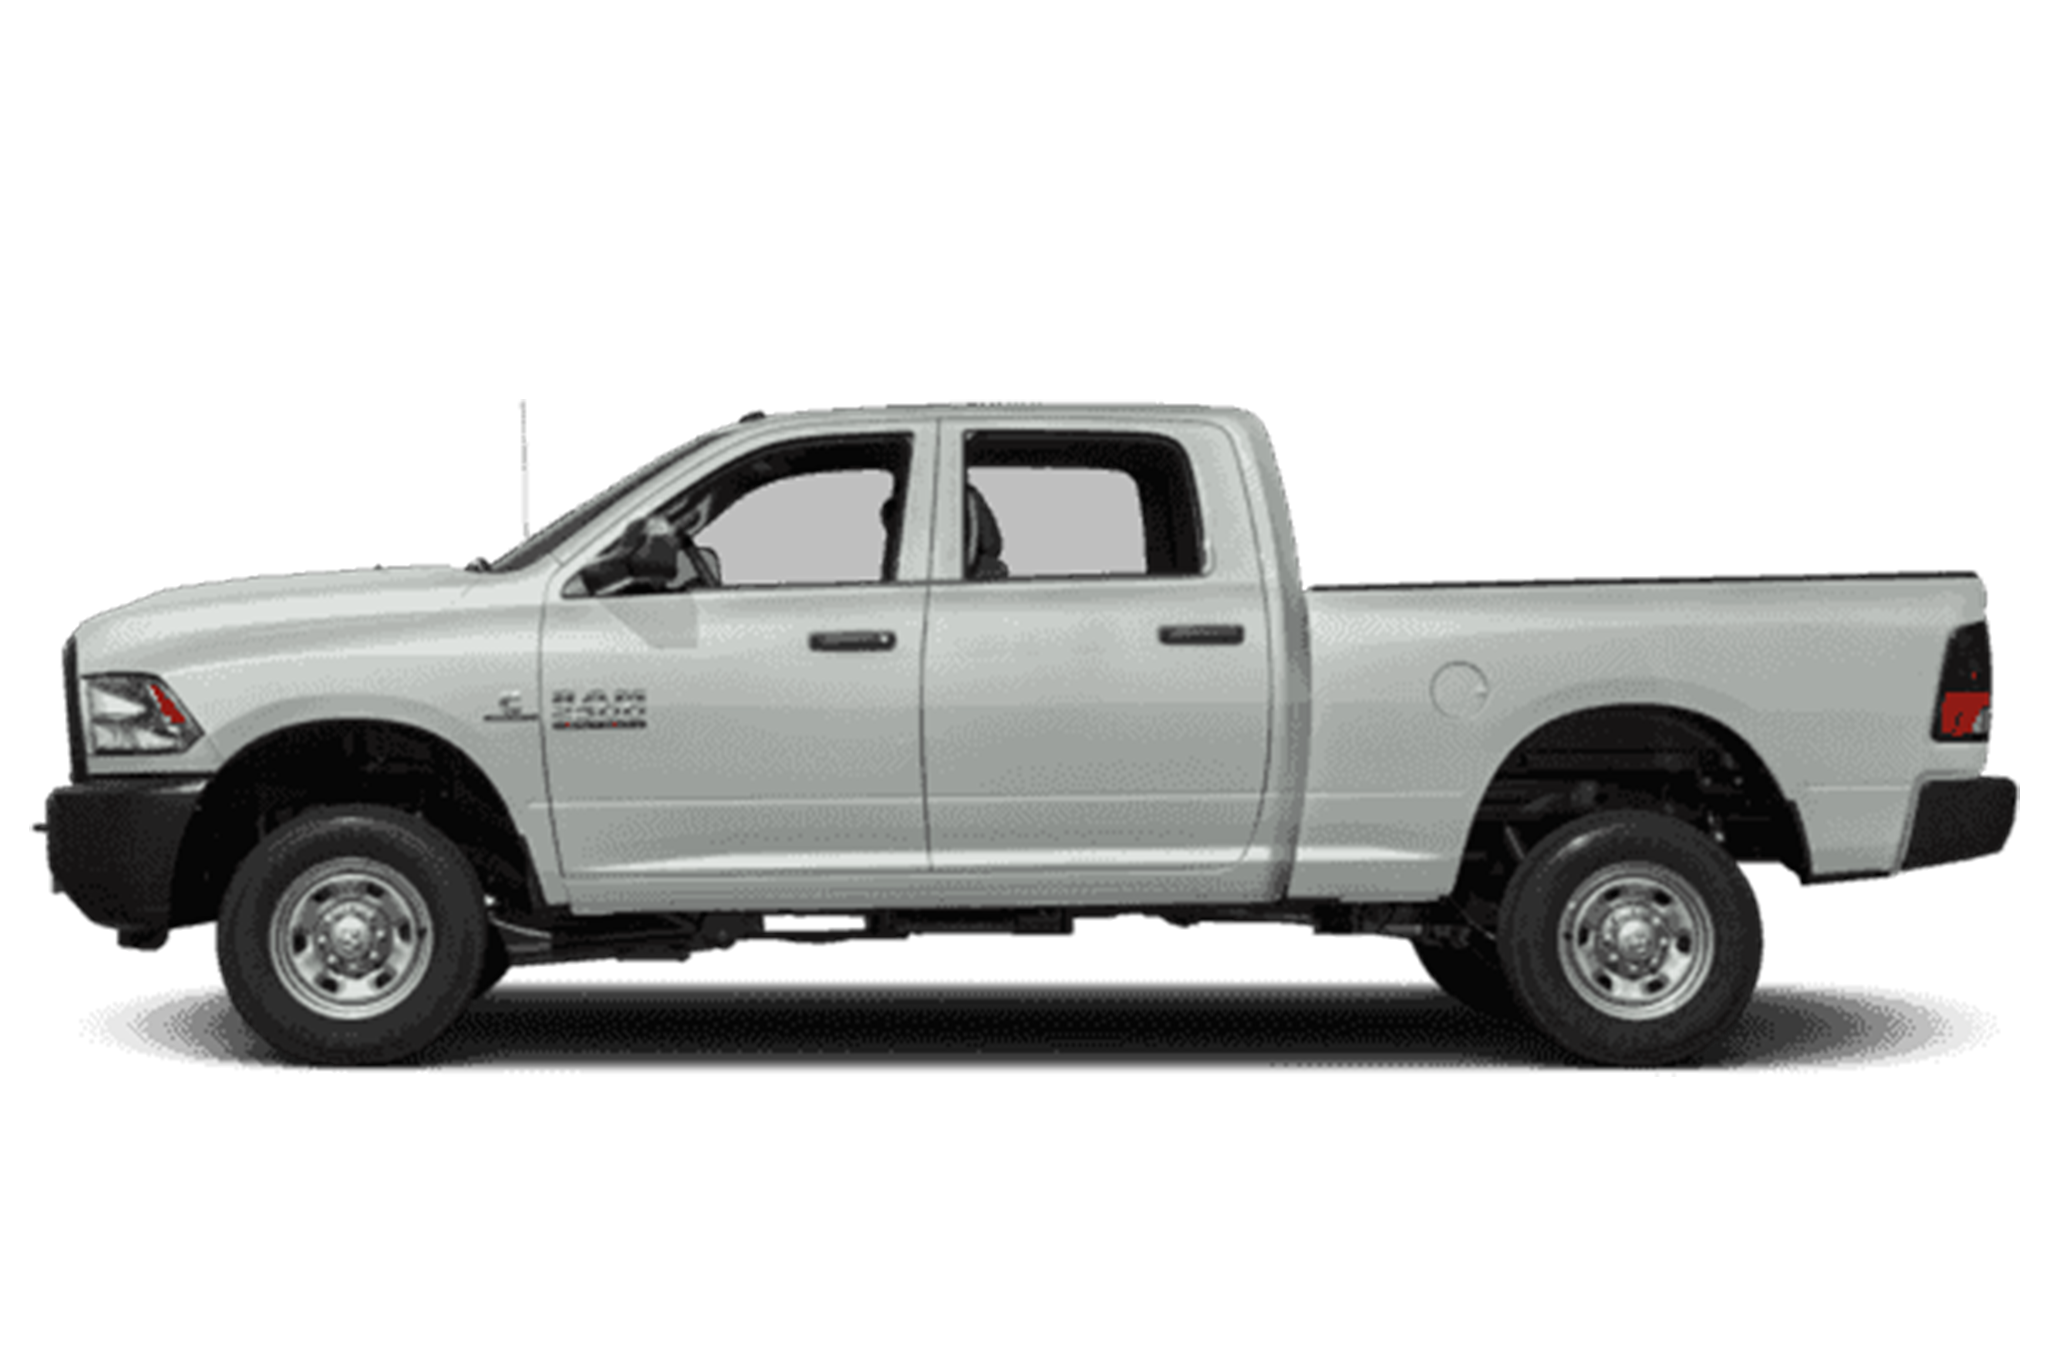 New Ram 2500 Delray Beach FL